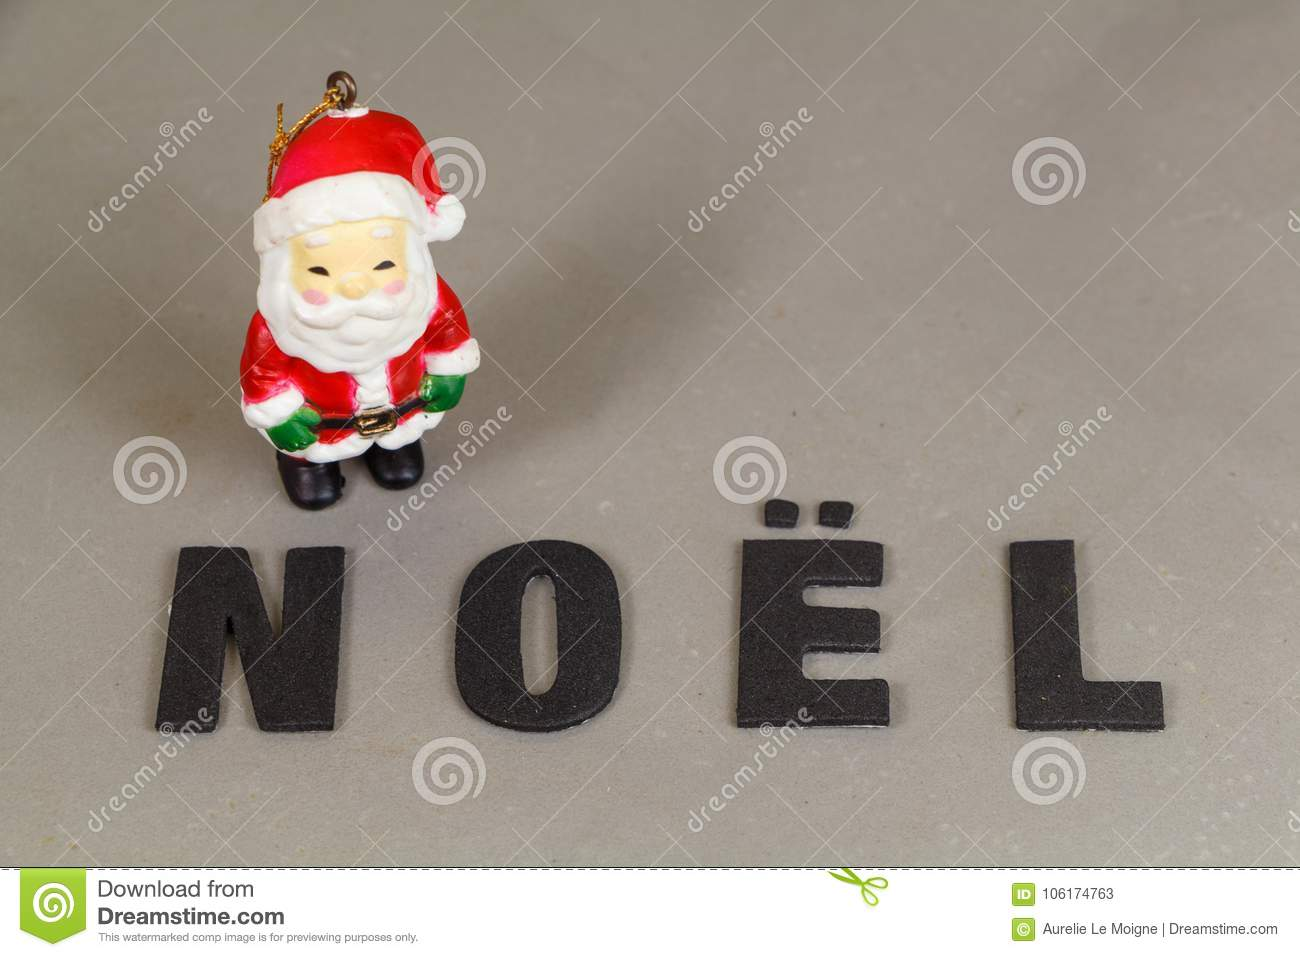 Santa claus figurine and the word christmas stock image image of download santa claus figurine and the word christmas stock image image of letter decoration spiritdancerdesigns Images